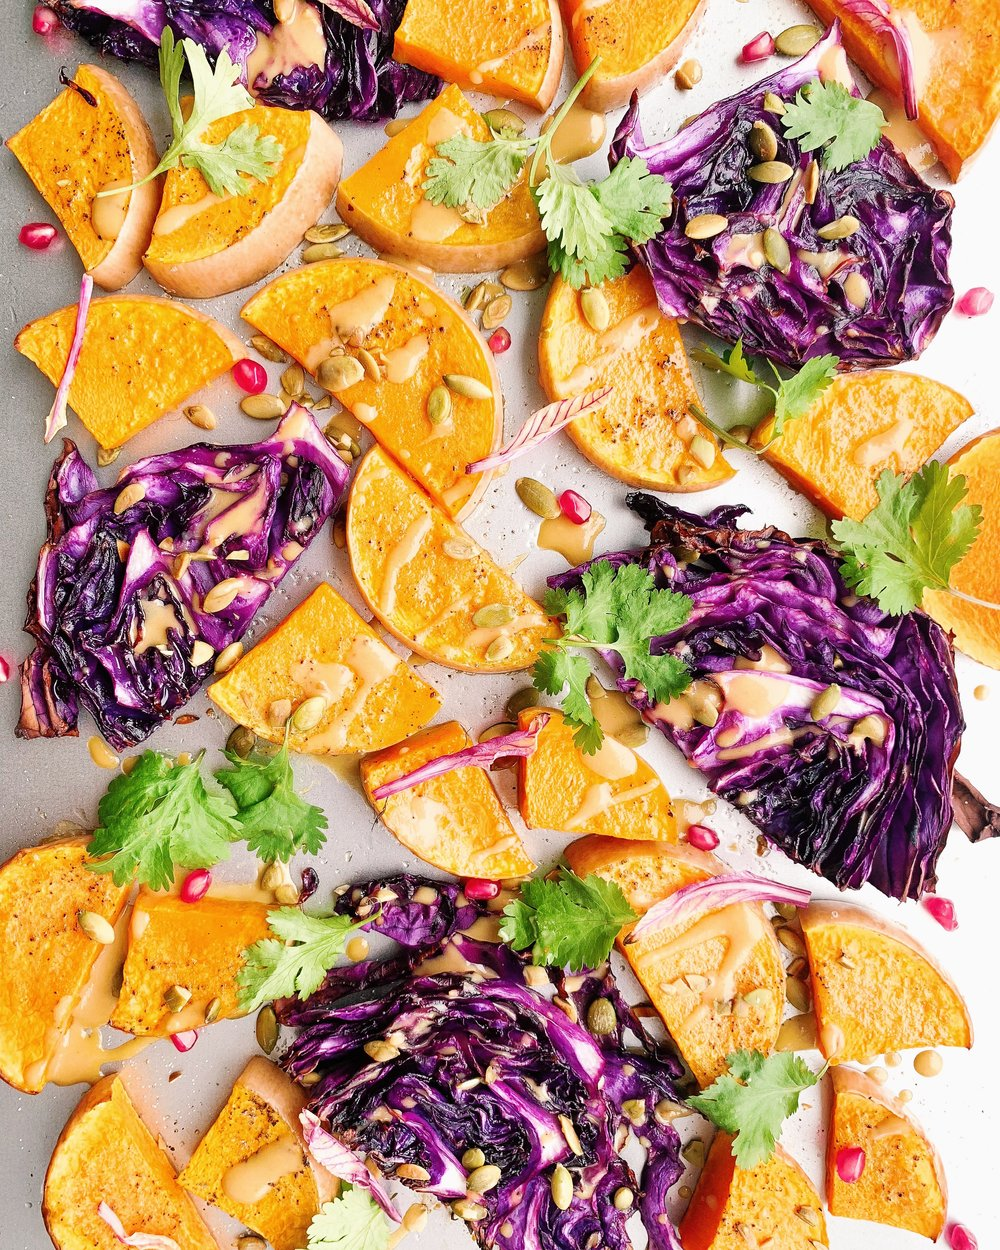 Roasted Butternut Squash and Red Cabbage with Lemon-Miso-Maple Dressing - Add chickpeas to this sheet pan dinner and you're set! foody first - vegan, gluten free, paleo (if not using the chickpeas) #vegan #plantbased #glutenfree #dairyfree #paleo #sheetpan #sheetpandinner #butternutsquash #butternut #cabbage #easydinners